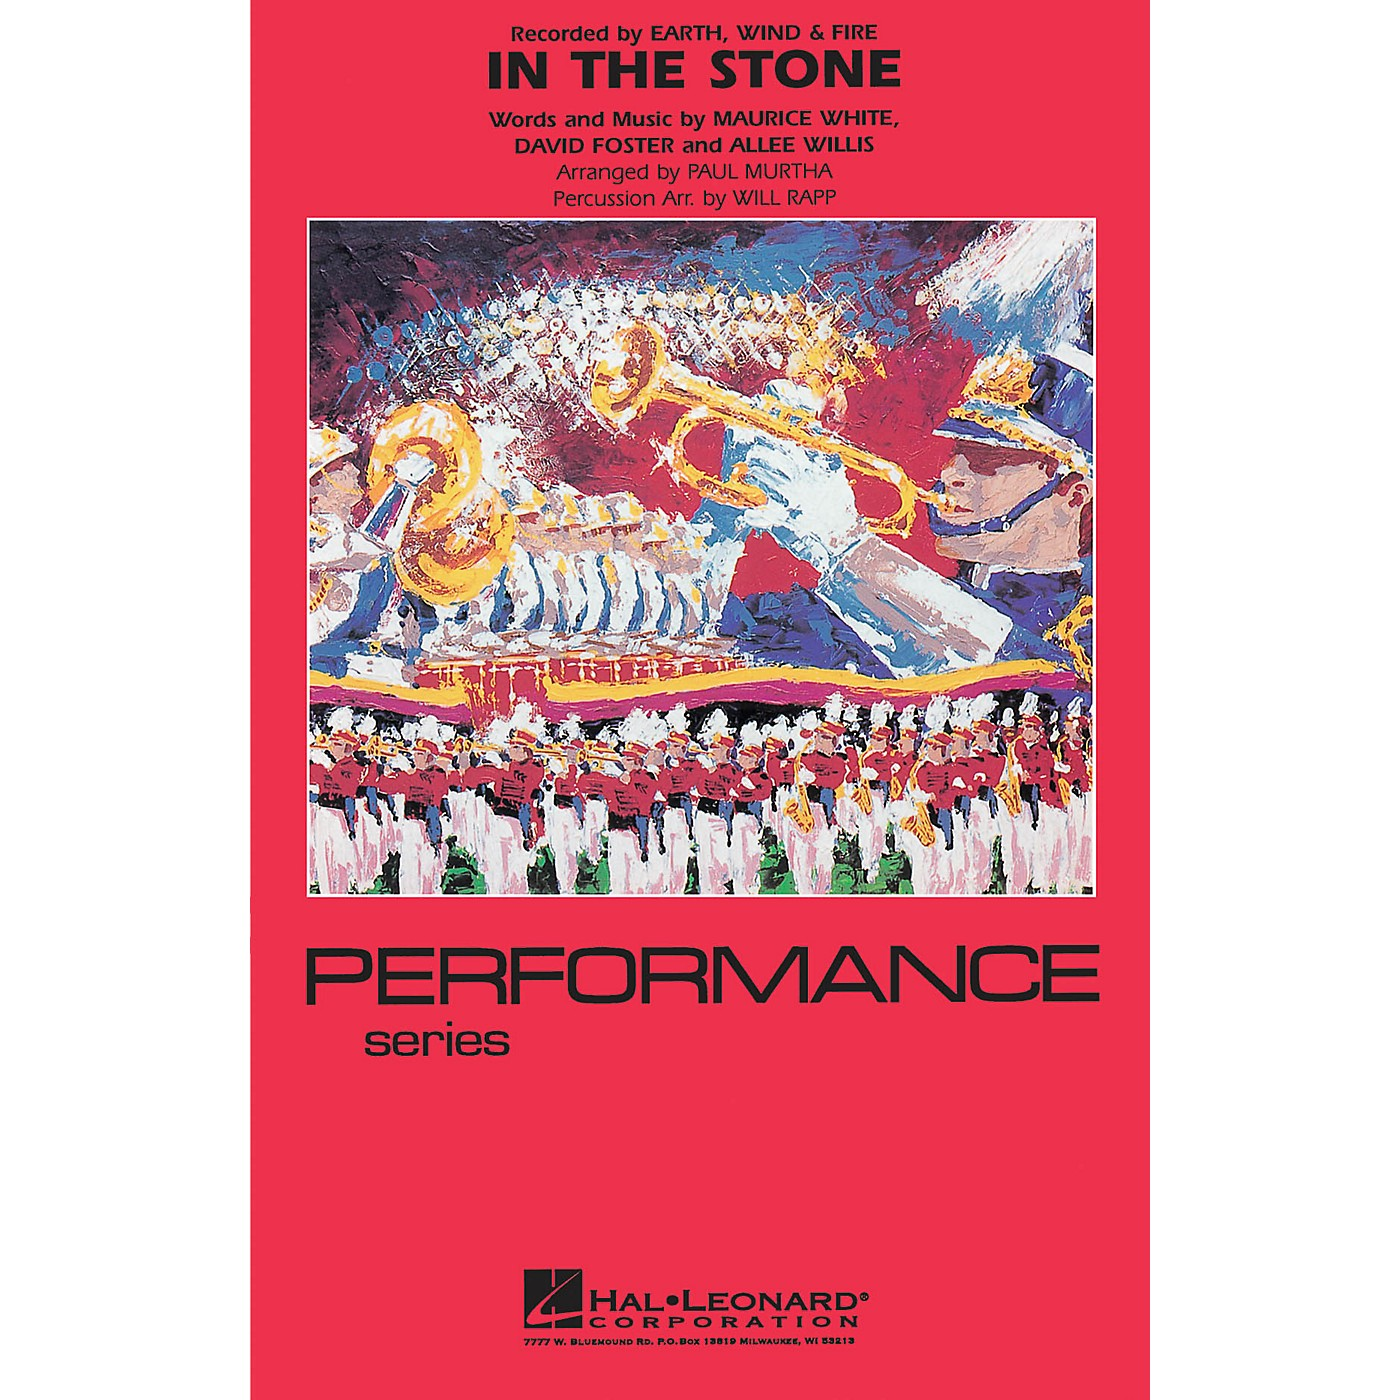 Hal Leonard In the Stone Marching Band Level 4 by Earth, Wind & Fire Arranged by Paul Murtha thumbnail